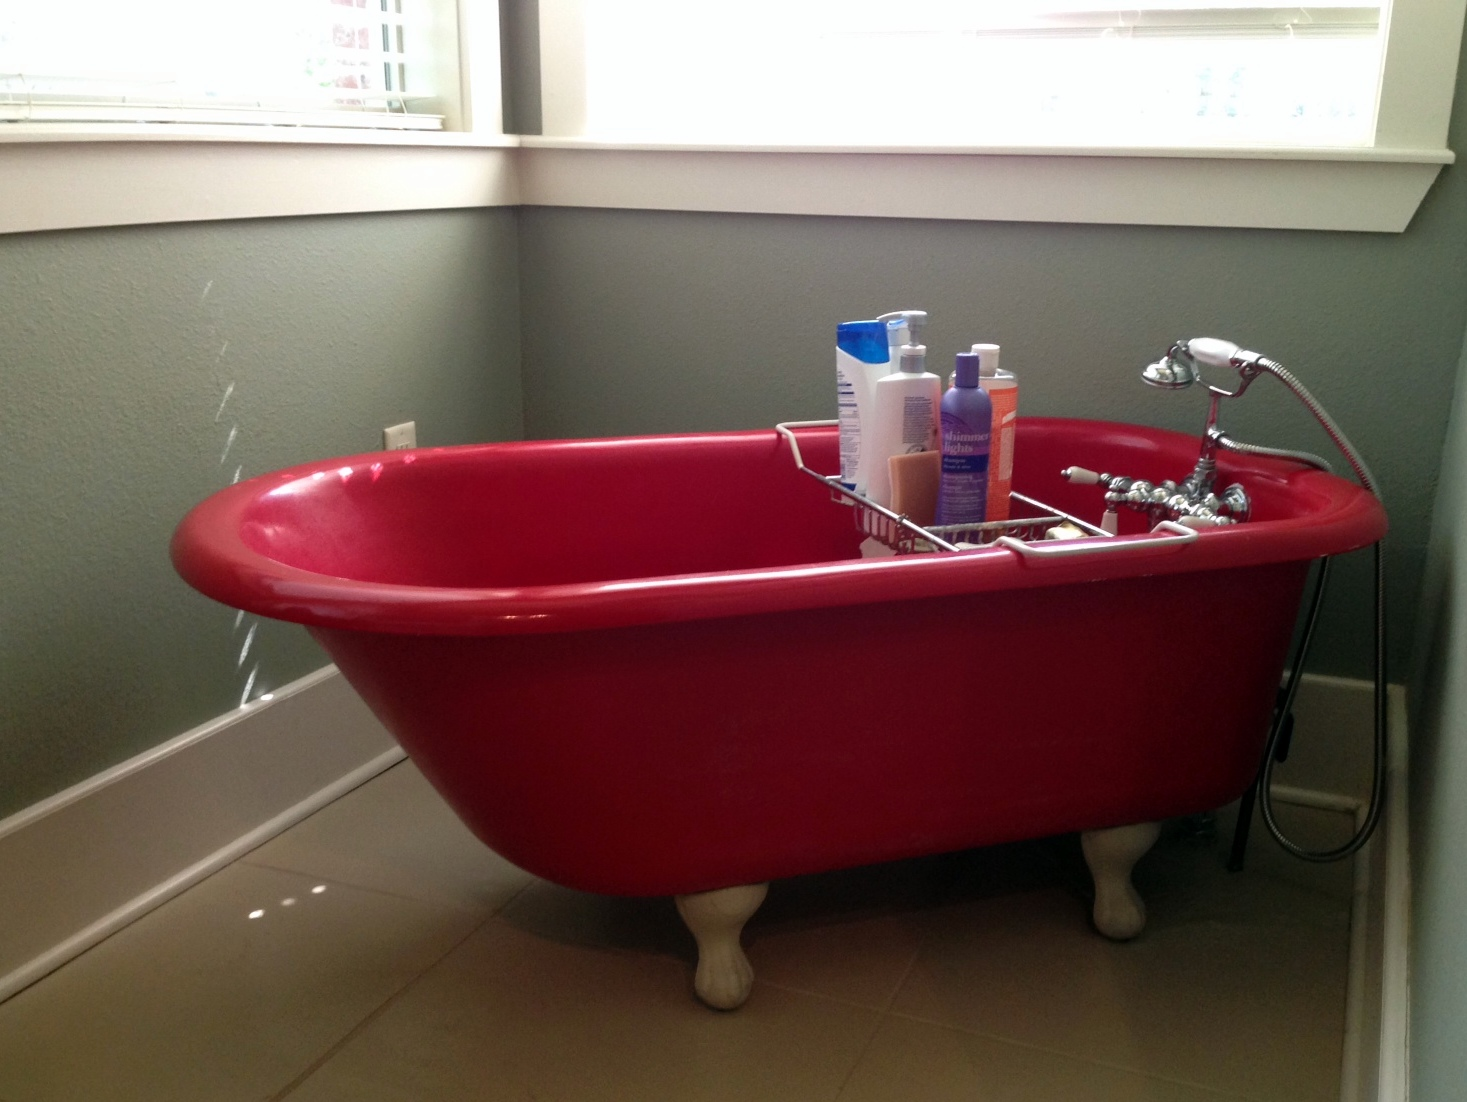 What To Do With A Red Tub Floor Tiles Shower Home Interior Design And